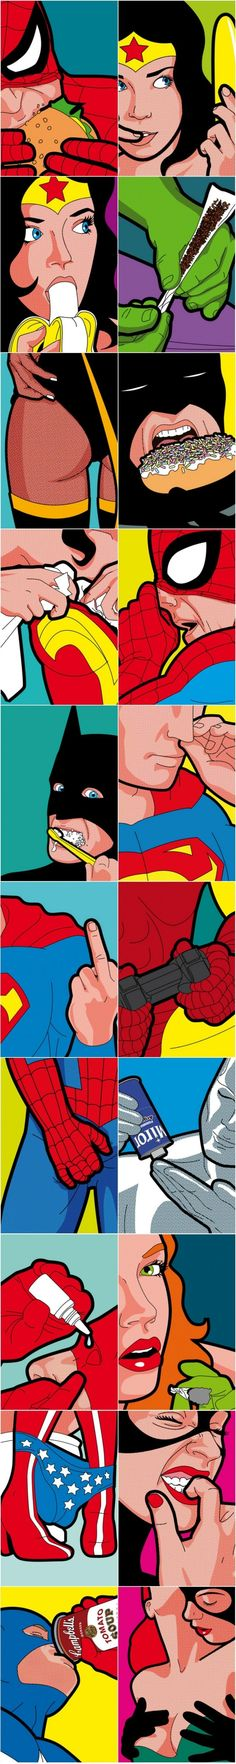 Superhero secrets // funny pictures - funny photos - funny images - funny pics - funny quotes - #lol #humor #funnypictures